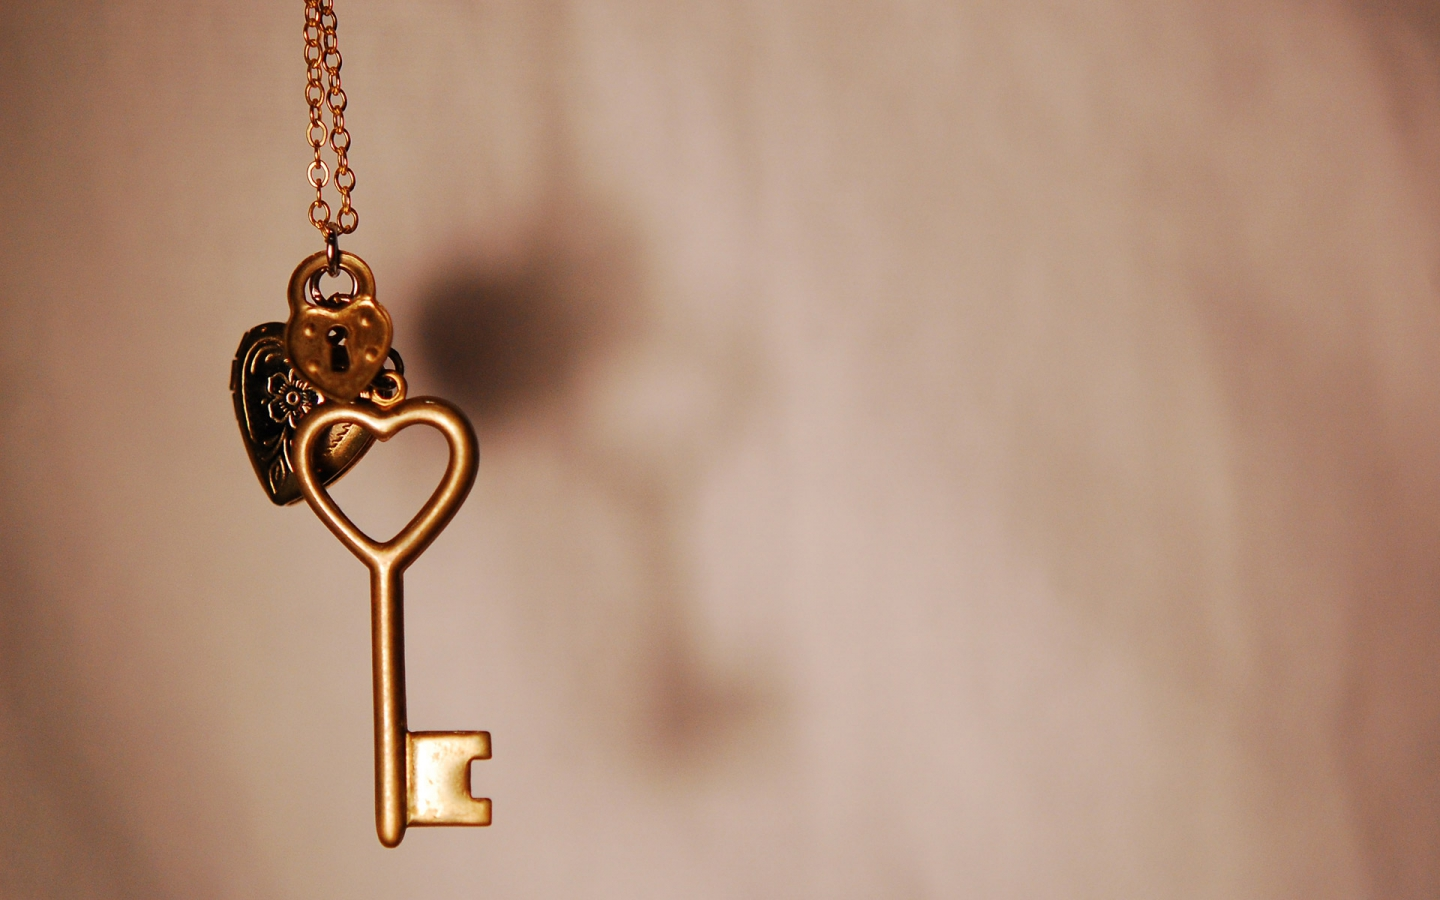 Love Jewellery Wallpaper : Key Love Quotes. QuotesGram